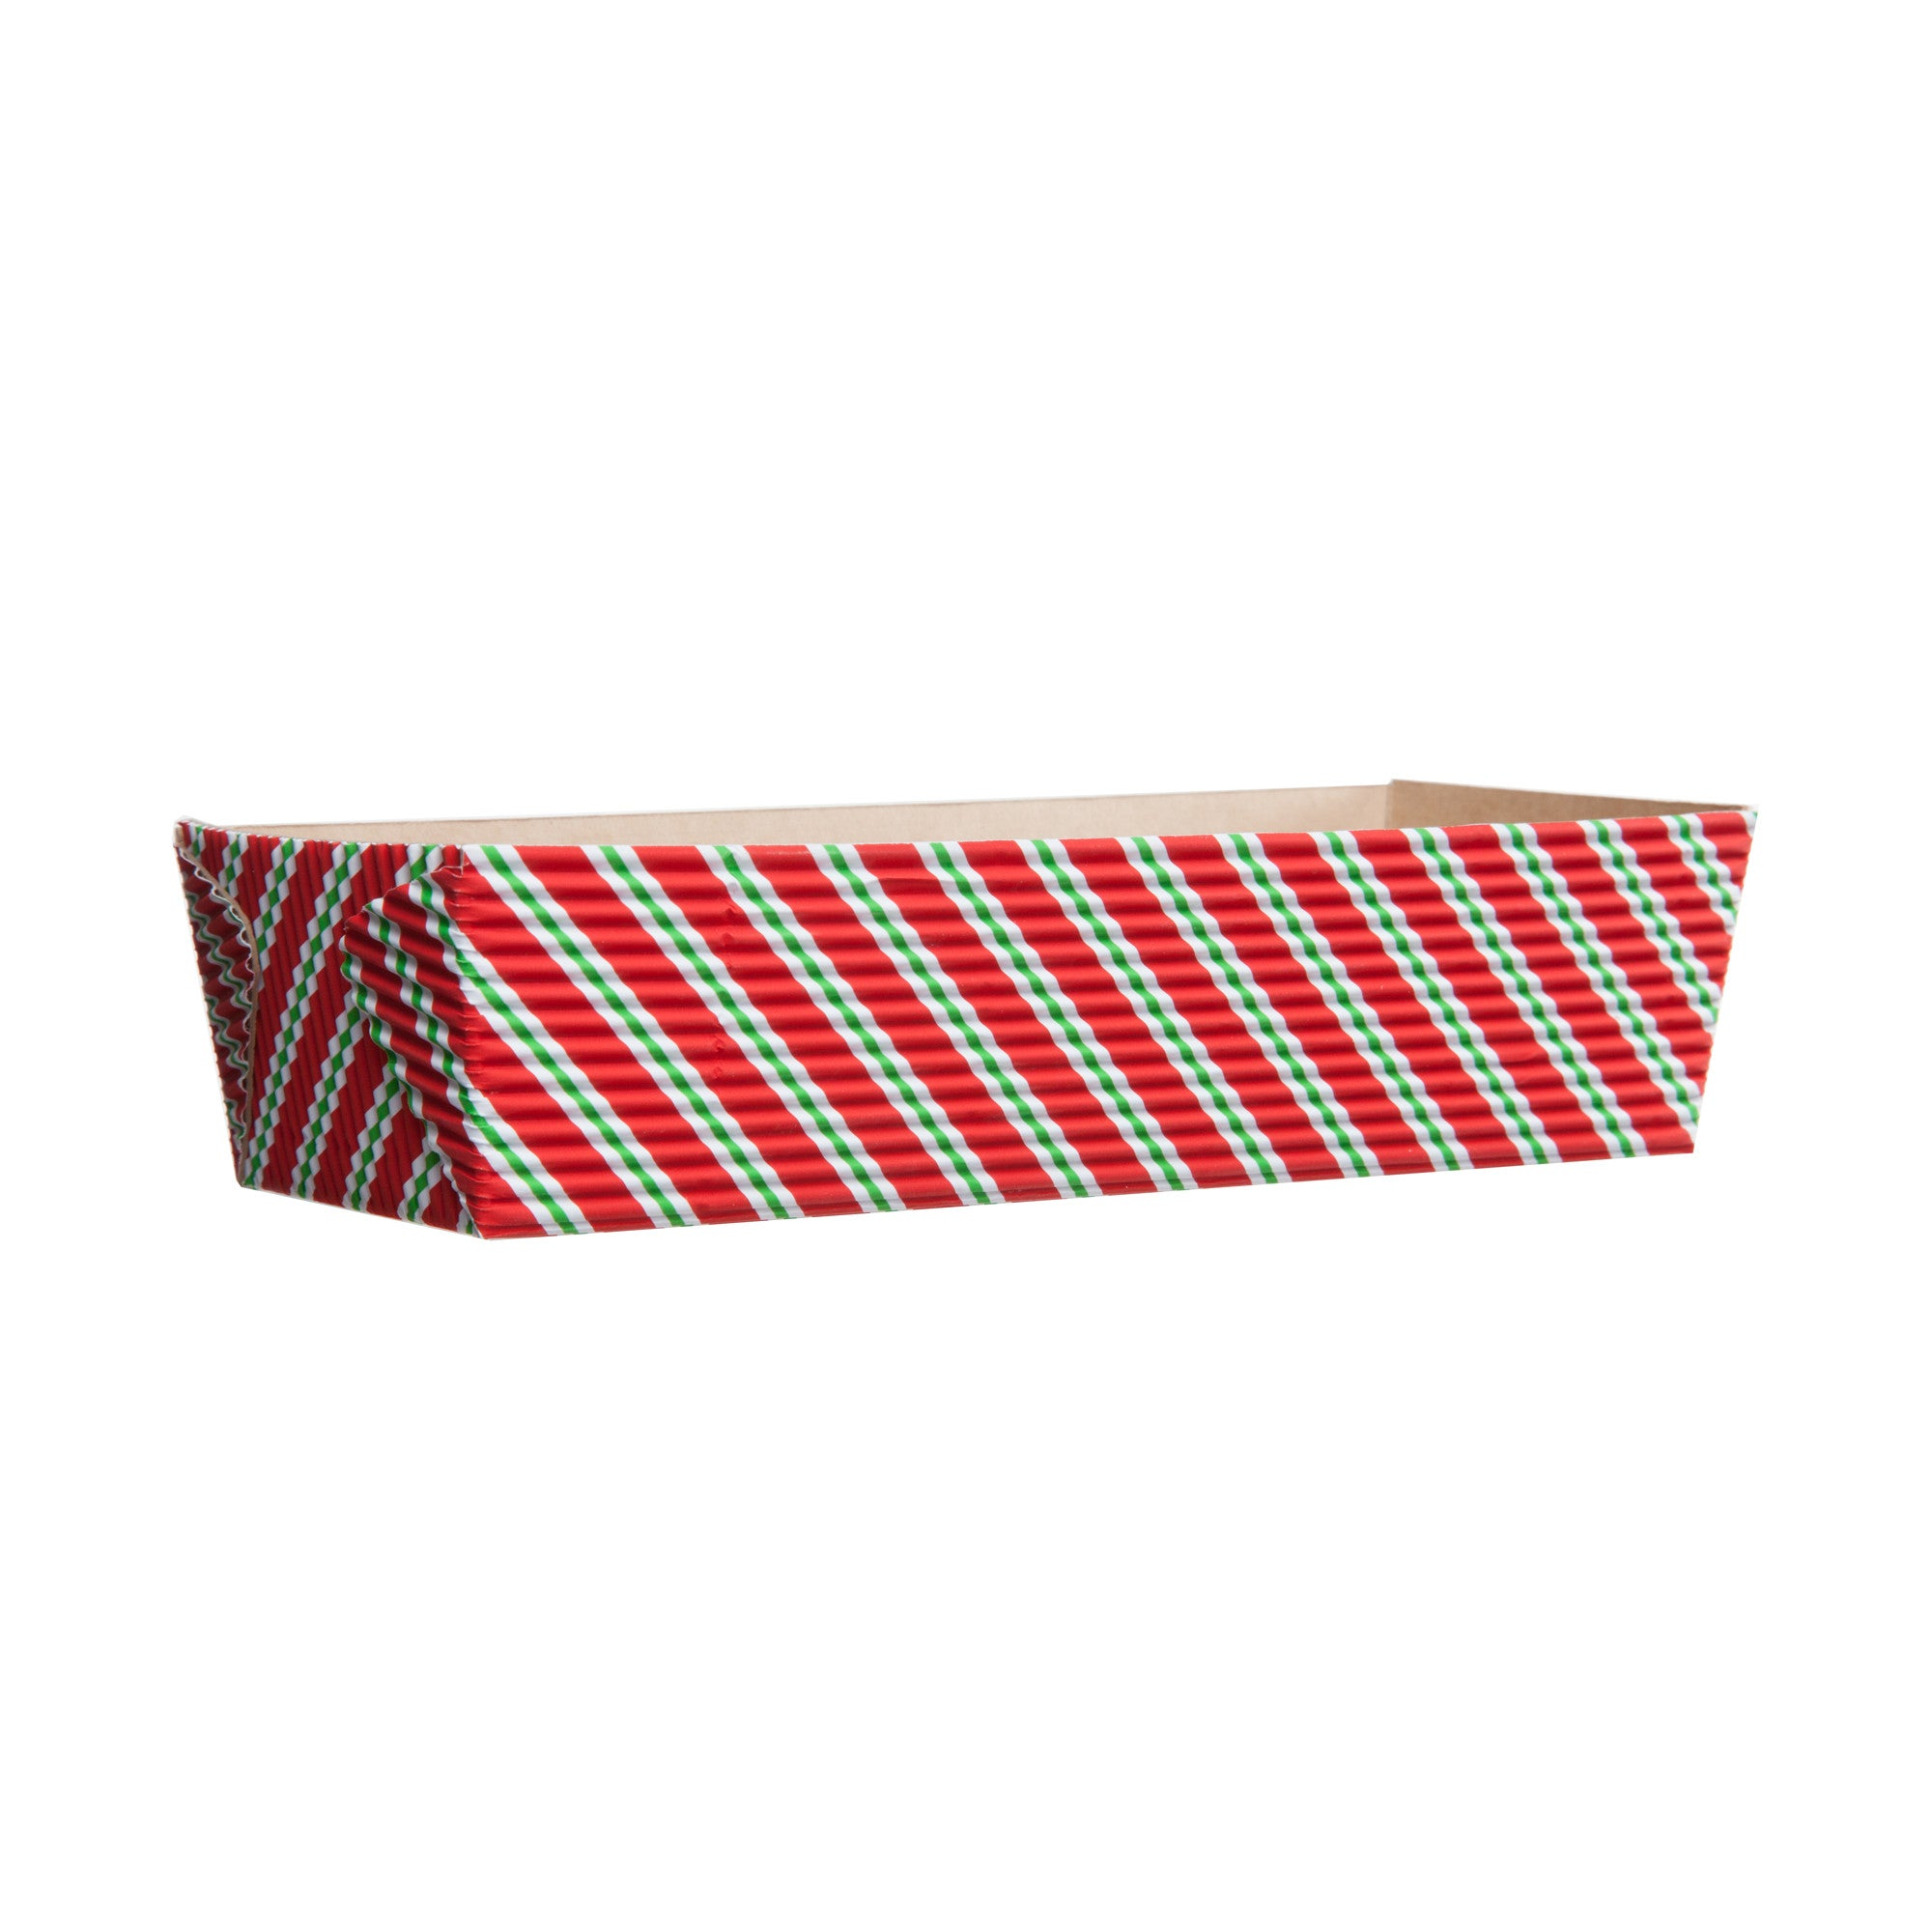 Rectangular Loaf Baking Pans, Diagonal Stripe - Paper Bake Shop